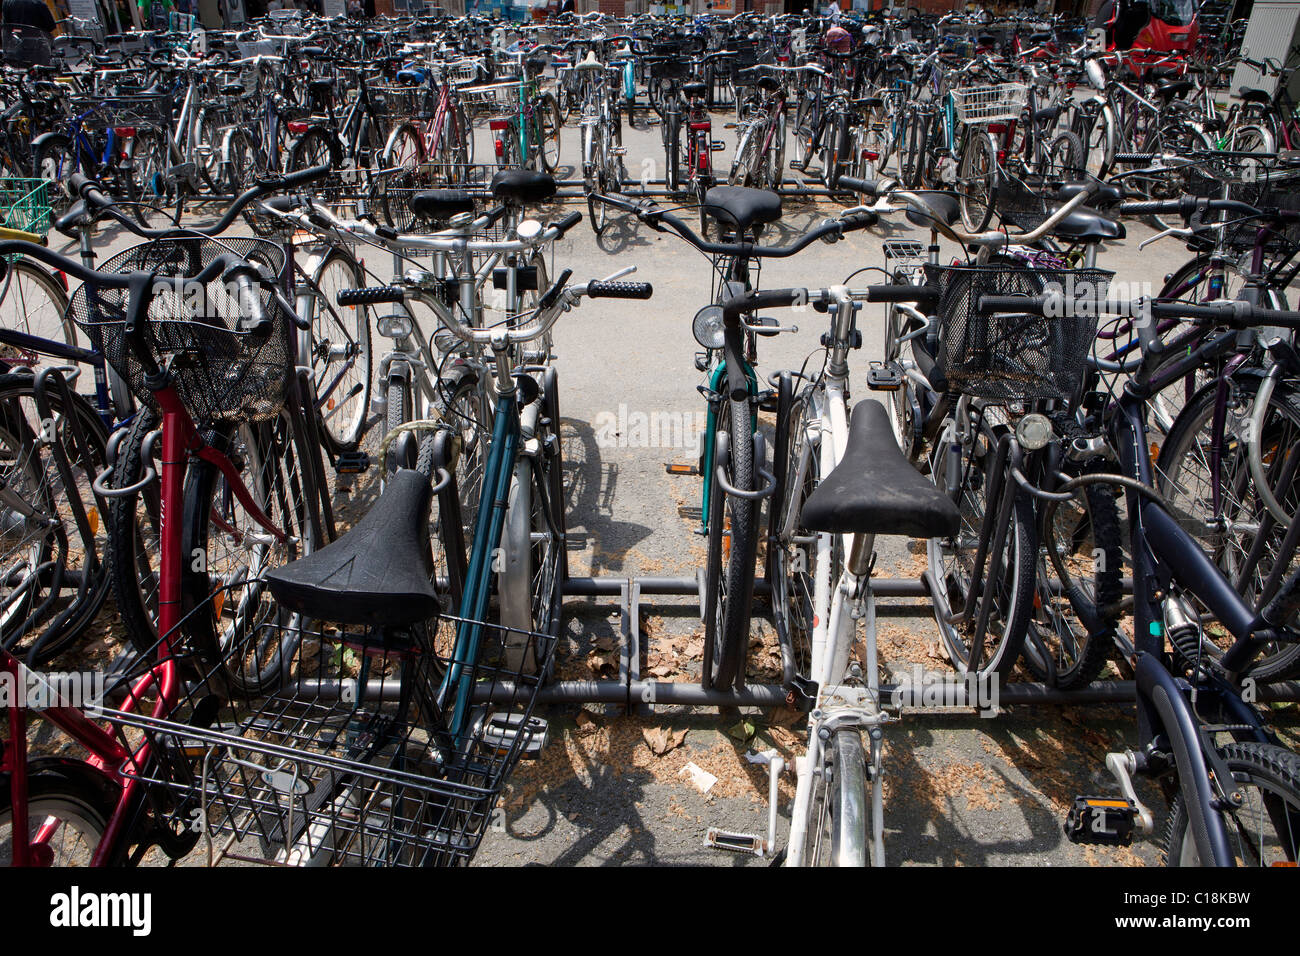 Many bicycles parked in a bicycle stand - Stock Image